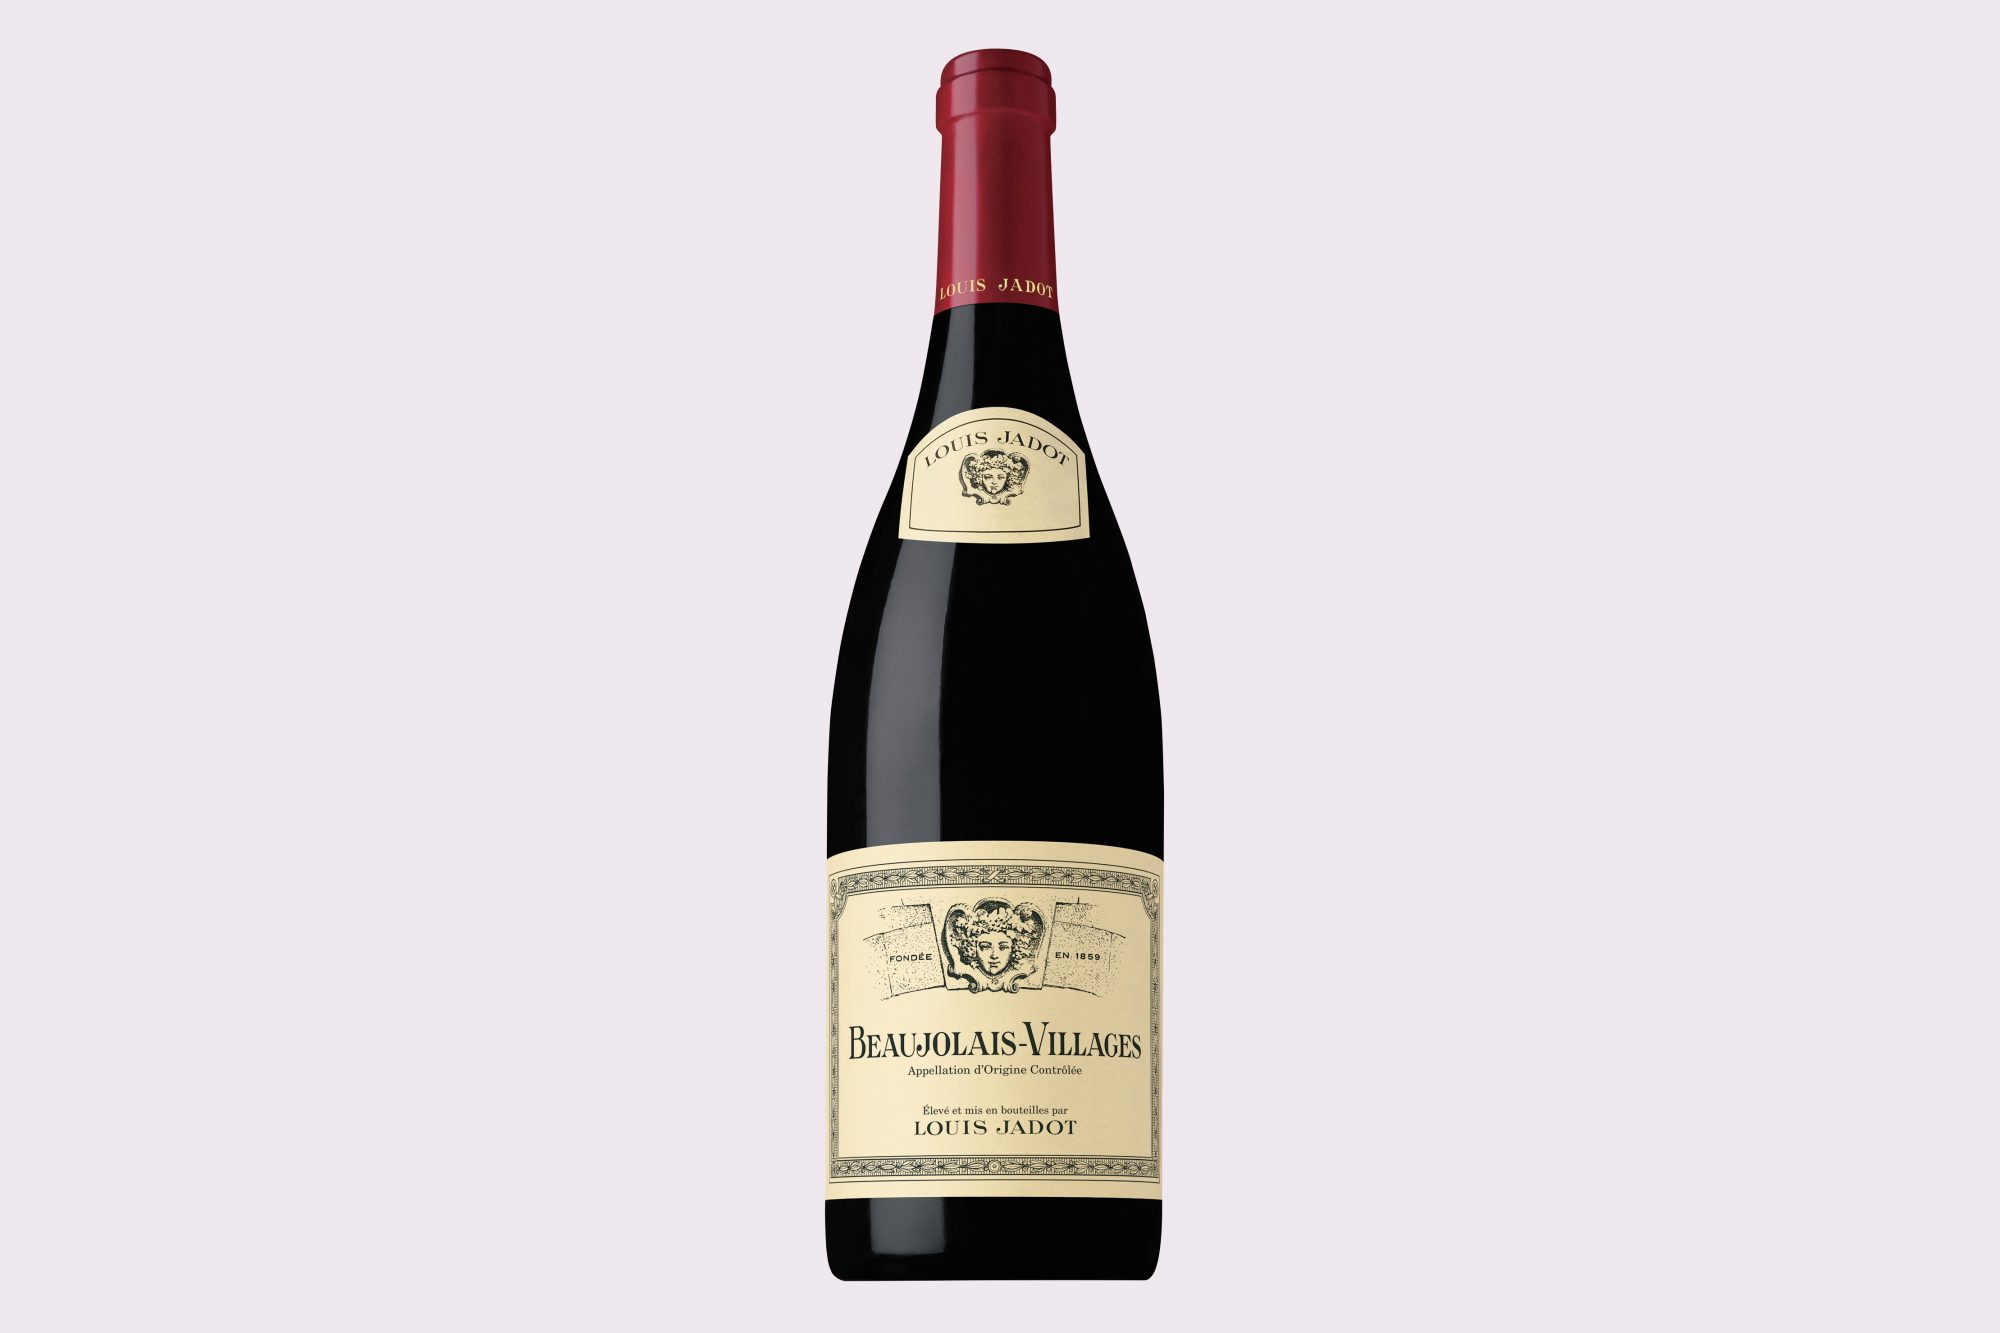 Beaujolais Villages Red wine bottle